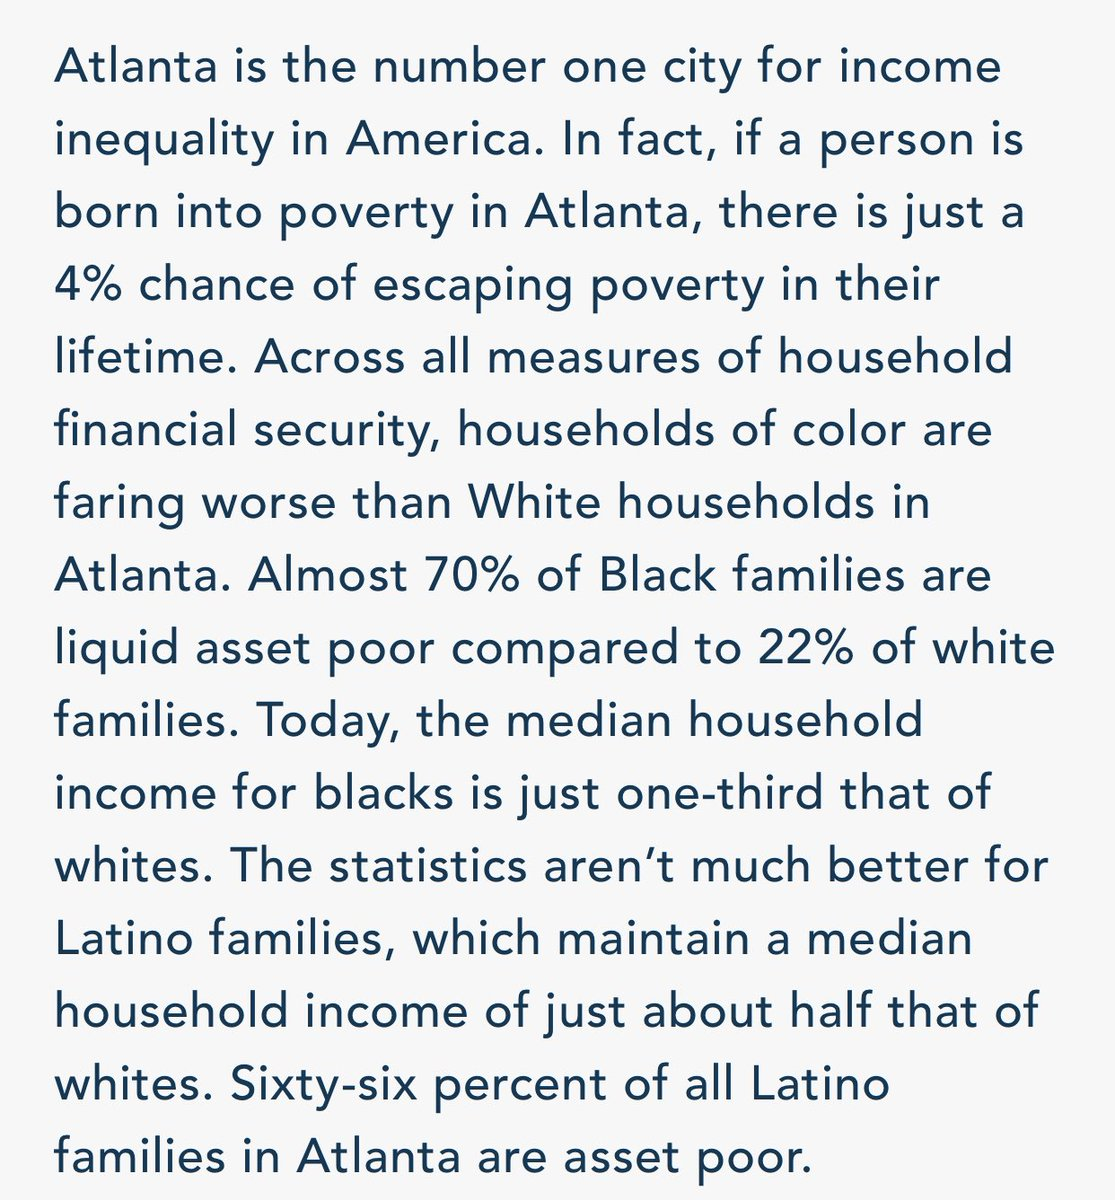 Follow the trail to the pockets where that $100M would end up—even in a majority Black city like Atlanta—and you might just learn something about systemic racism. https://t.co/MbBuIVyAMt https://t.co/jnv9Geg2Mt